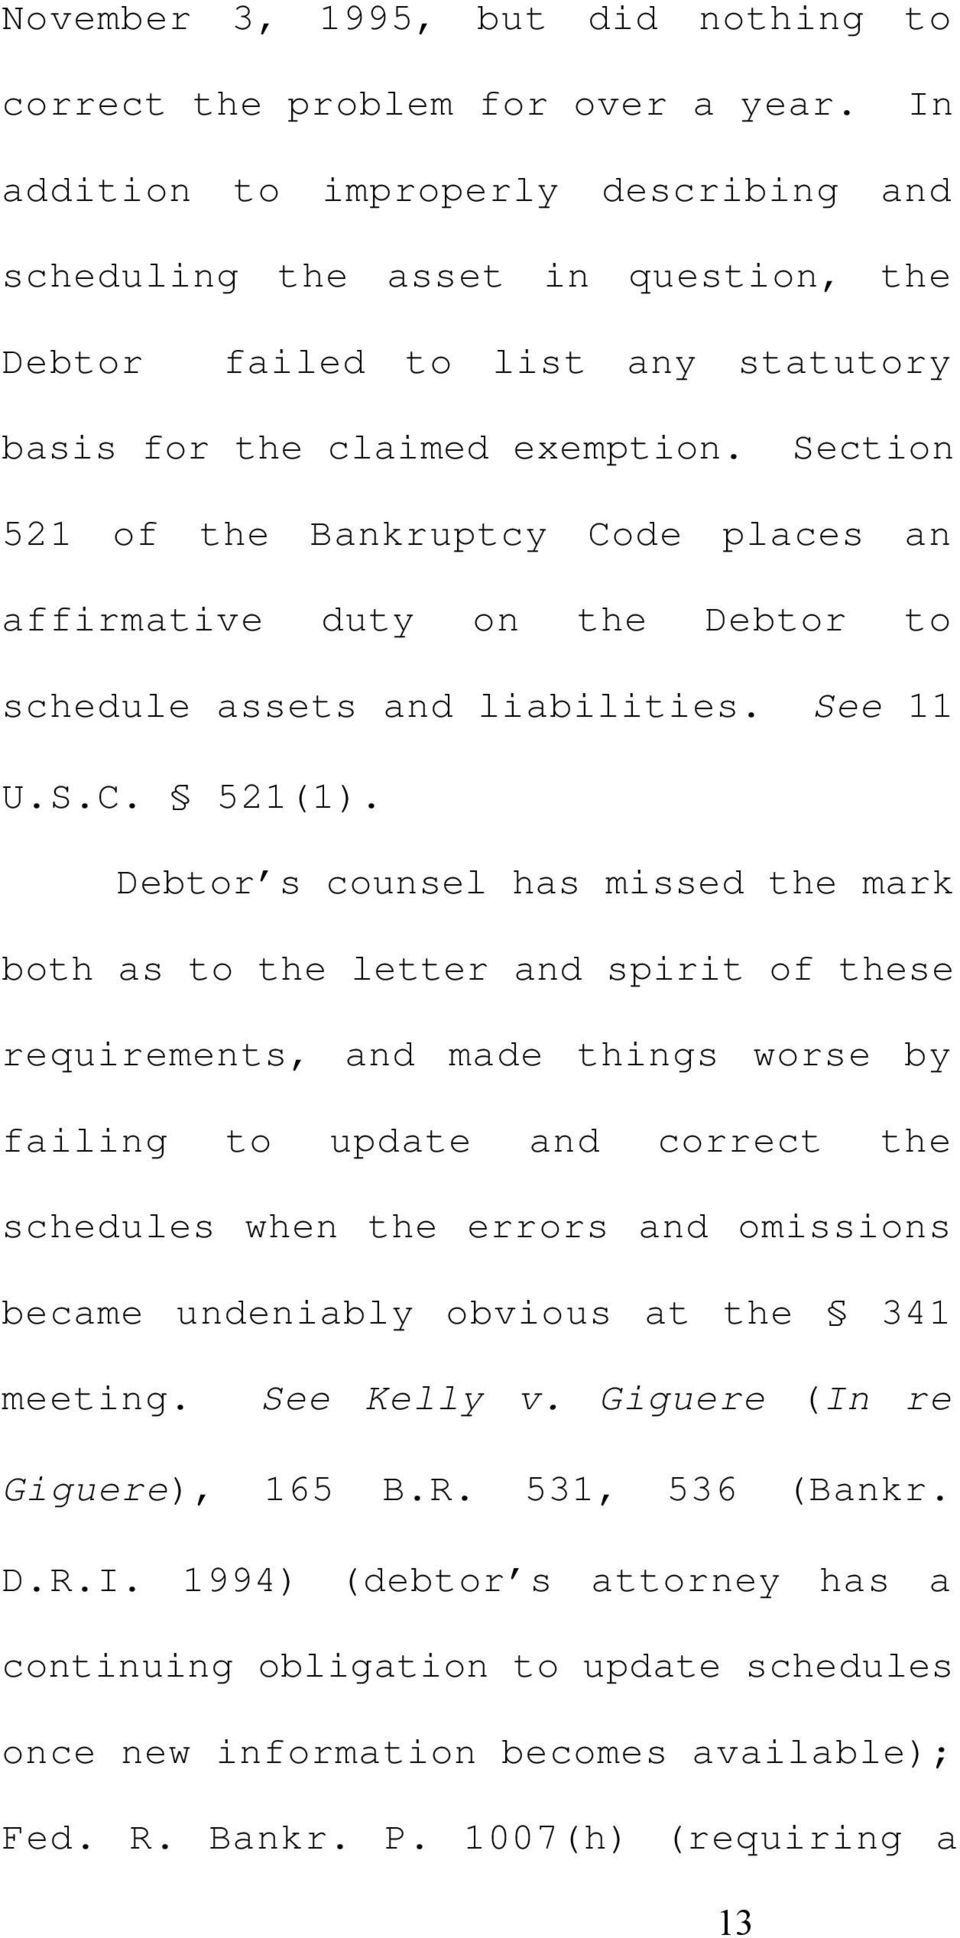 Section 521 of the Bankruptcy Code places an affirmative duty on the Debtor to schedule assets and liabilities. See 11 U.S.C. 521(1).